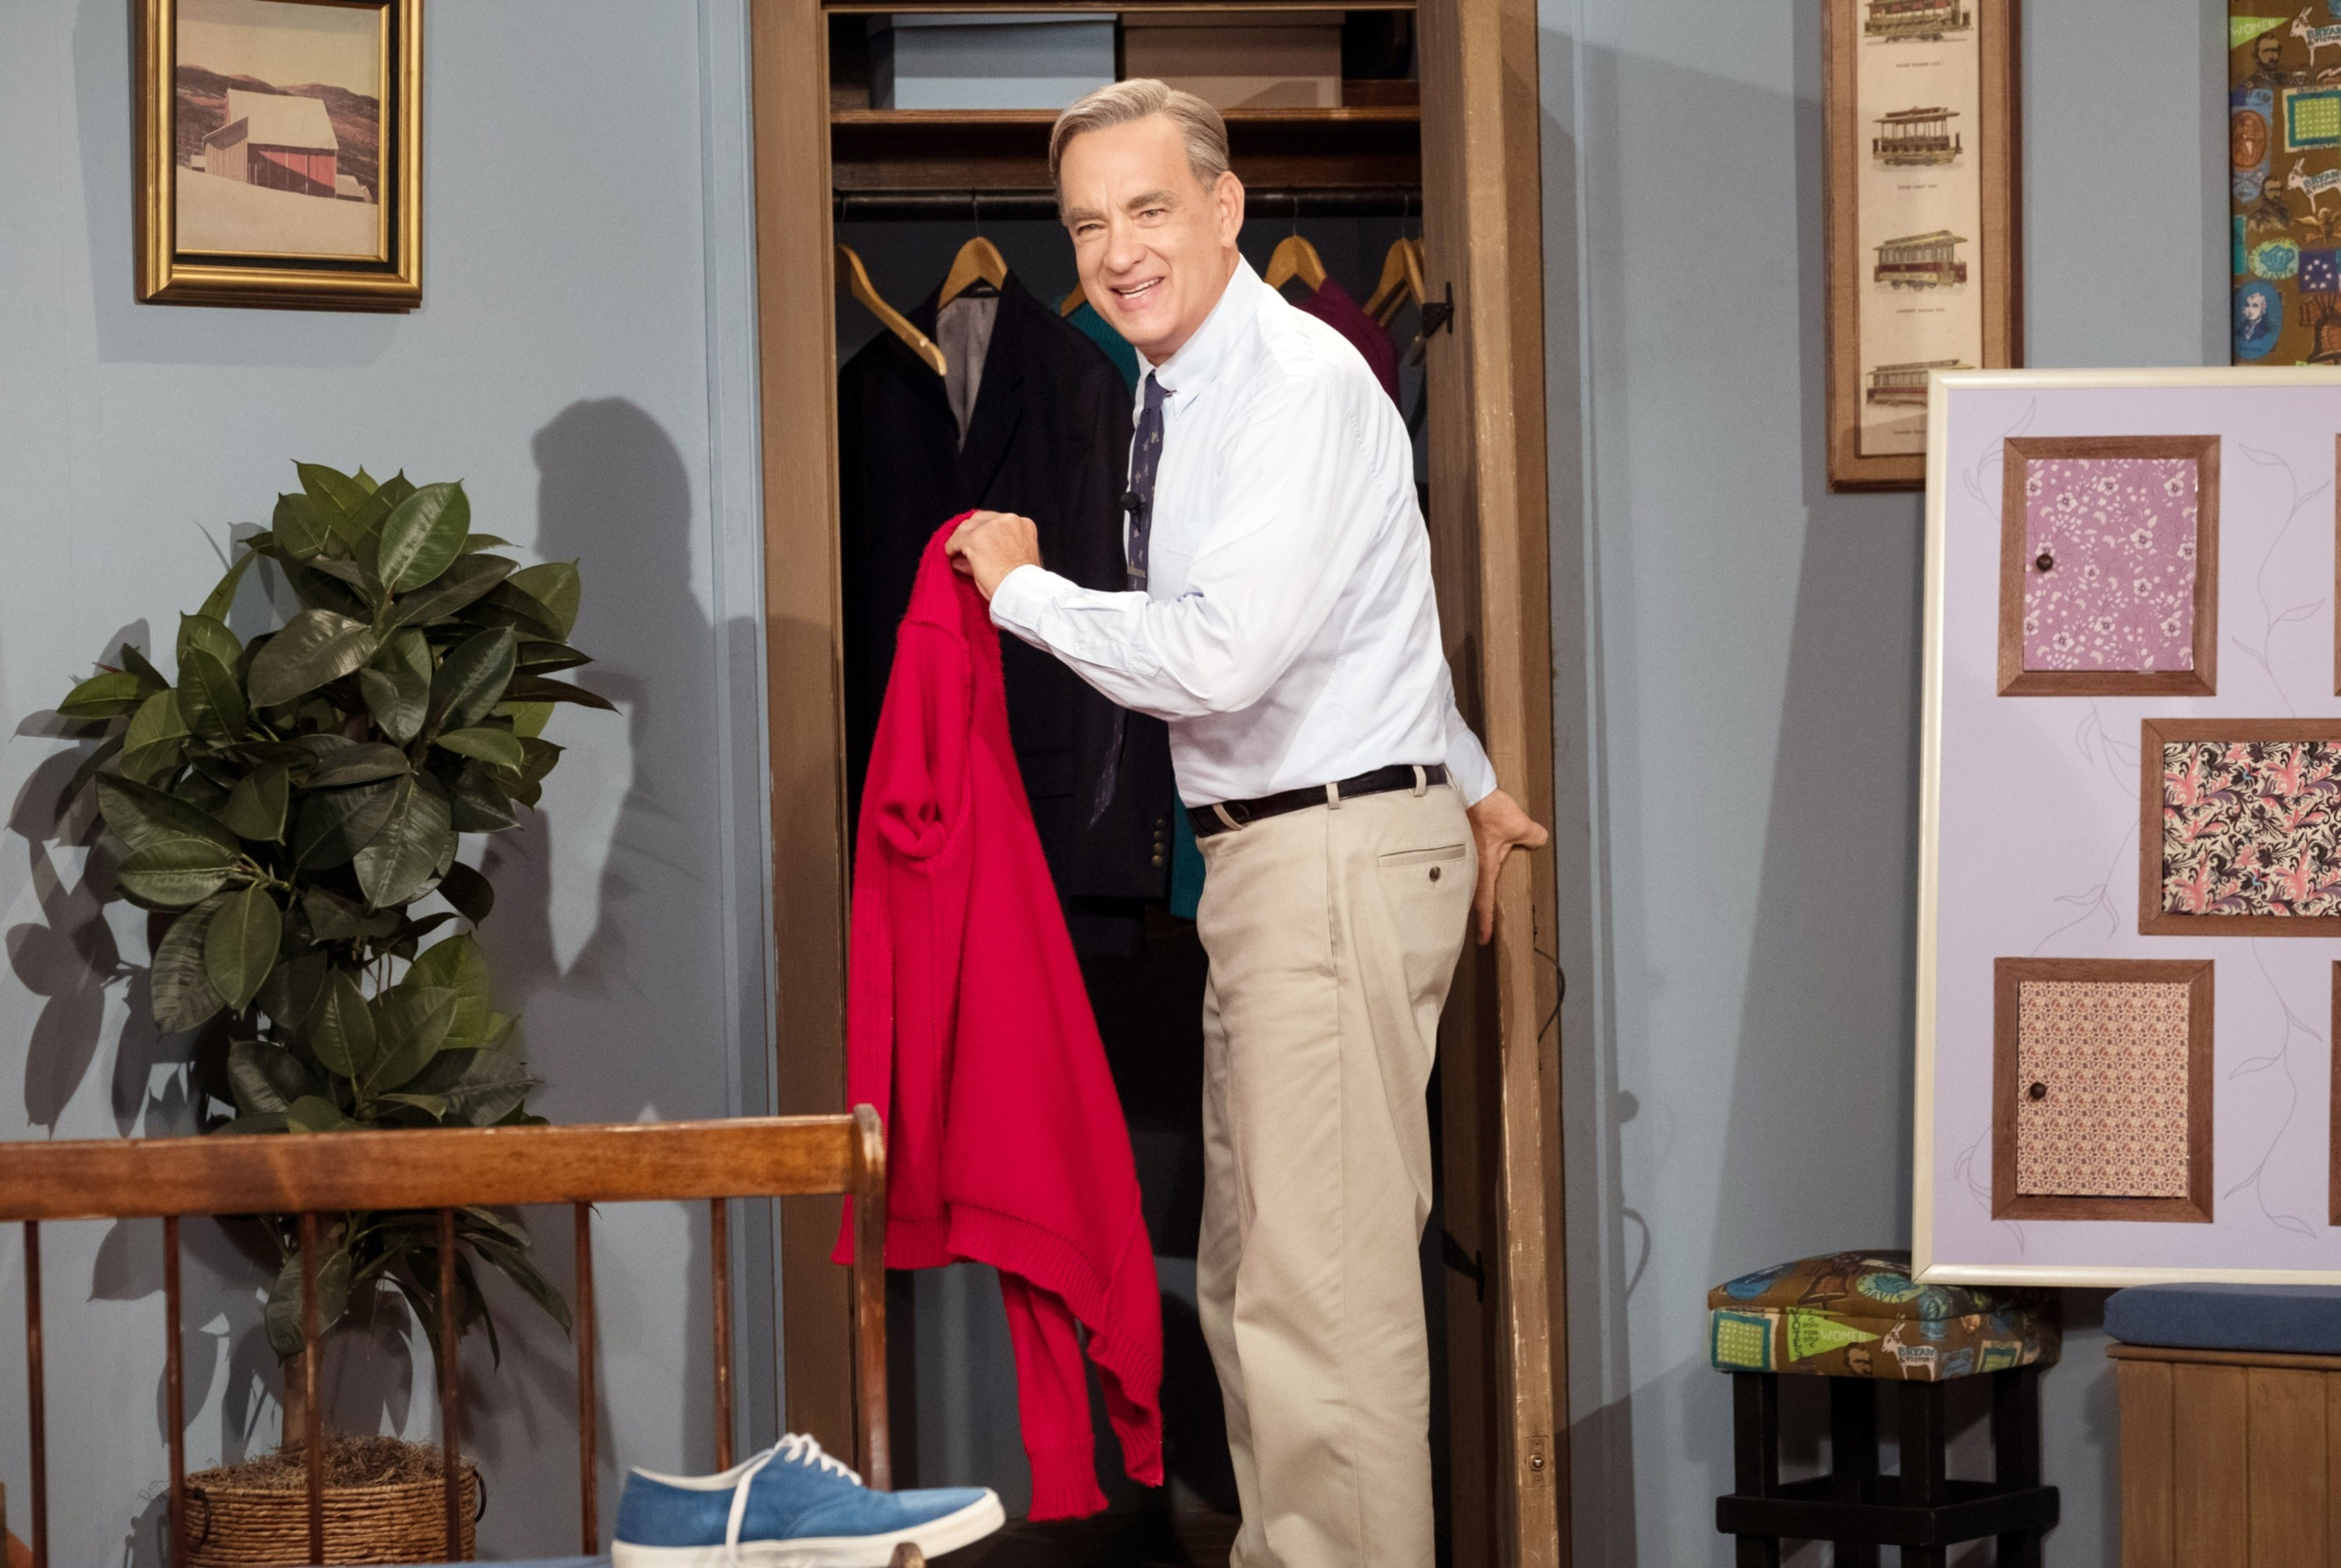 Fred Rogers dressed in sneakers, pants, a shirt and tie, and holding a sweater in the film